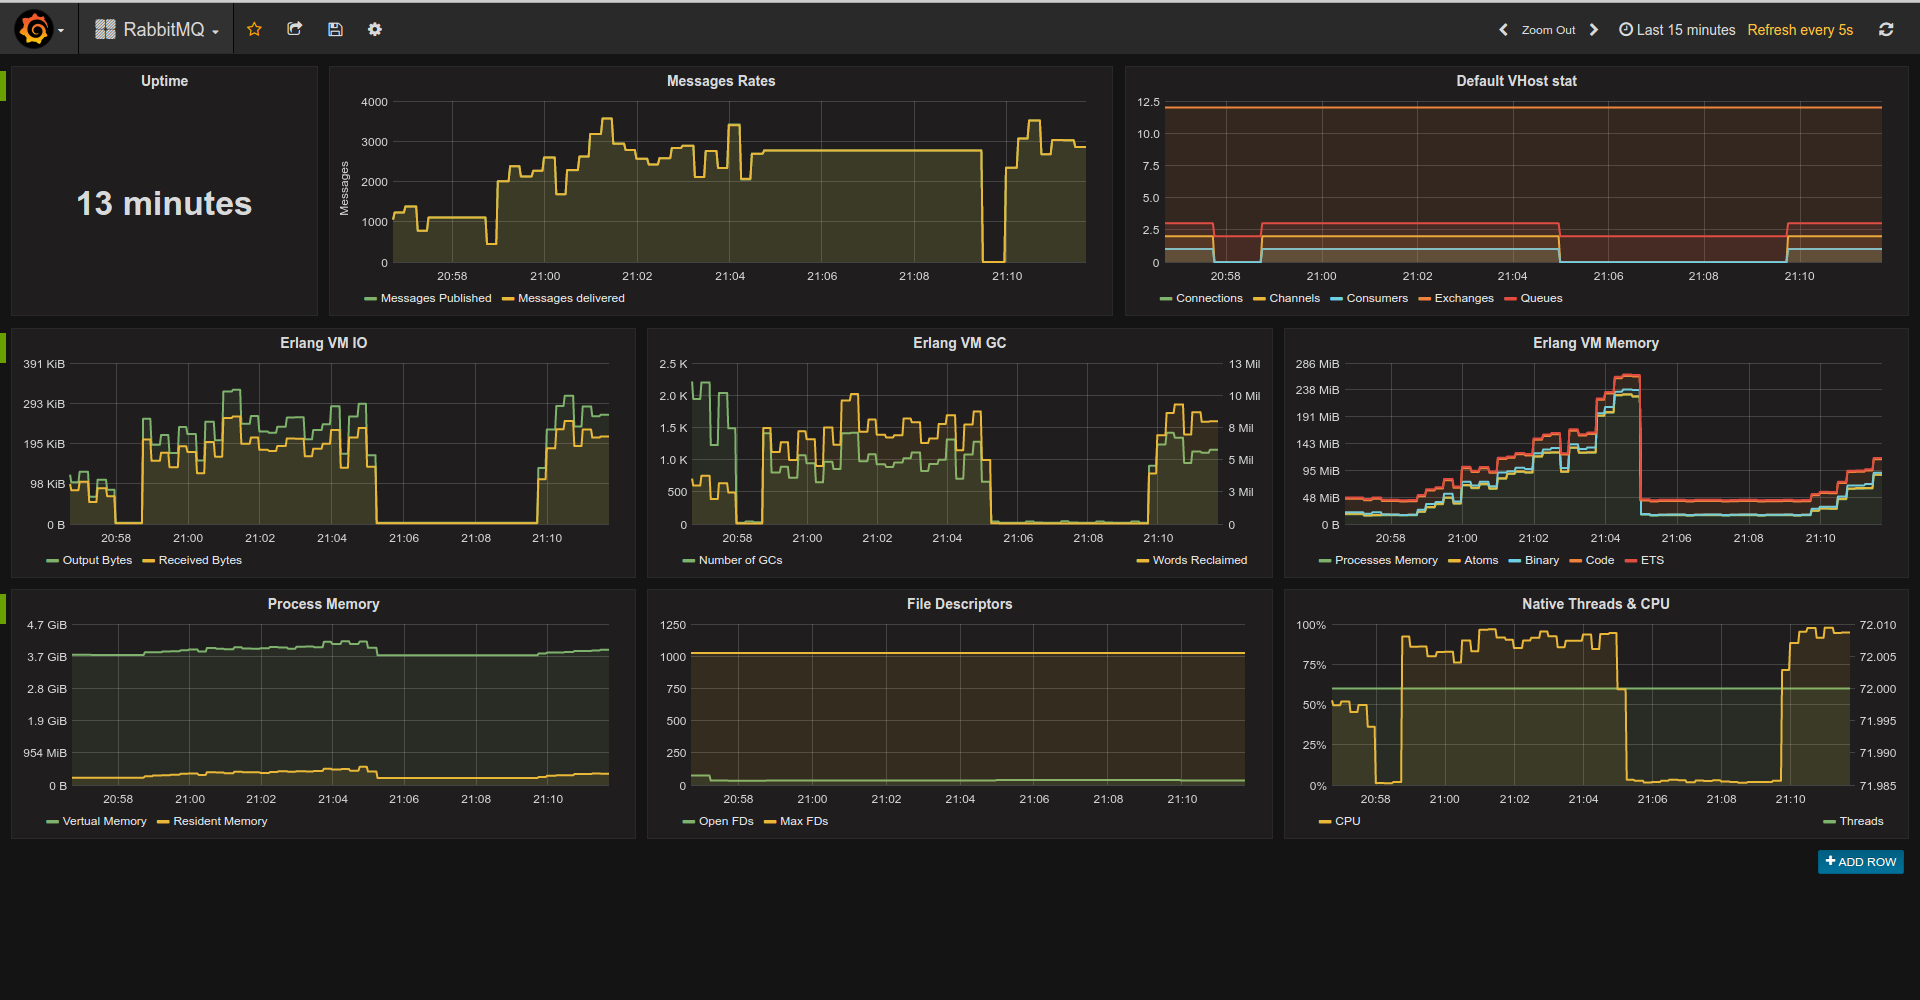 RabbitMQ Dashboard